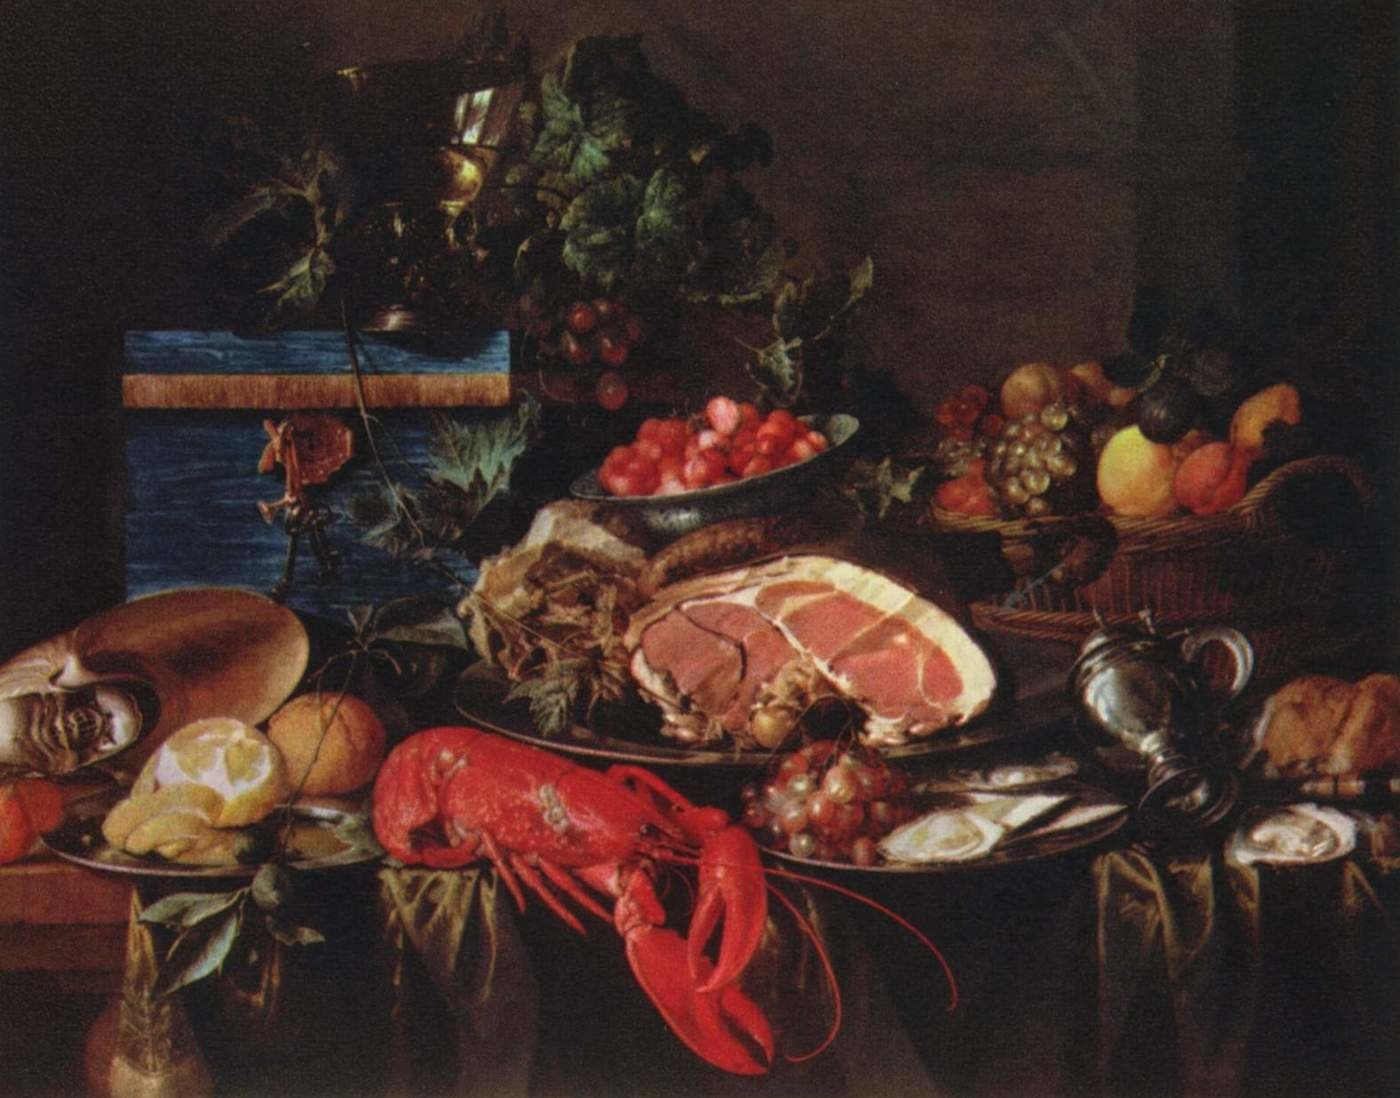 Jan Davidsz. De Heem background